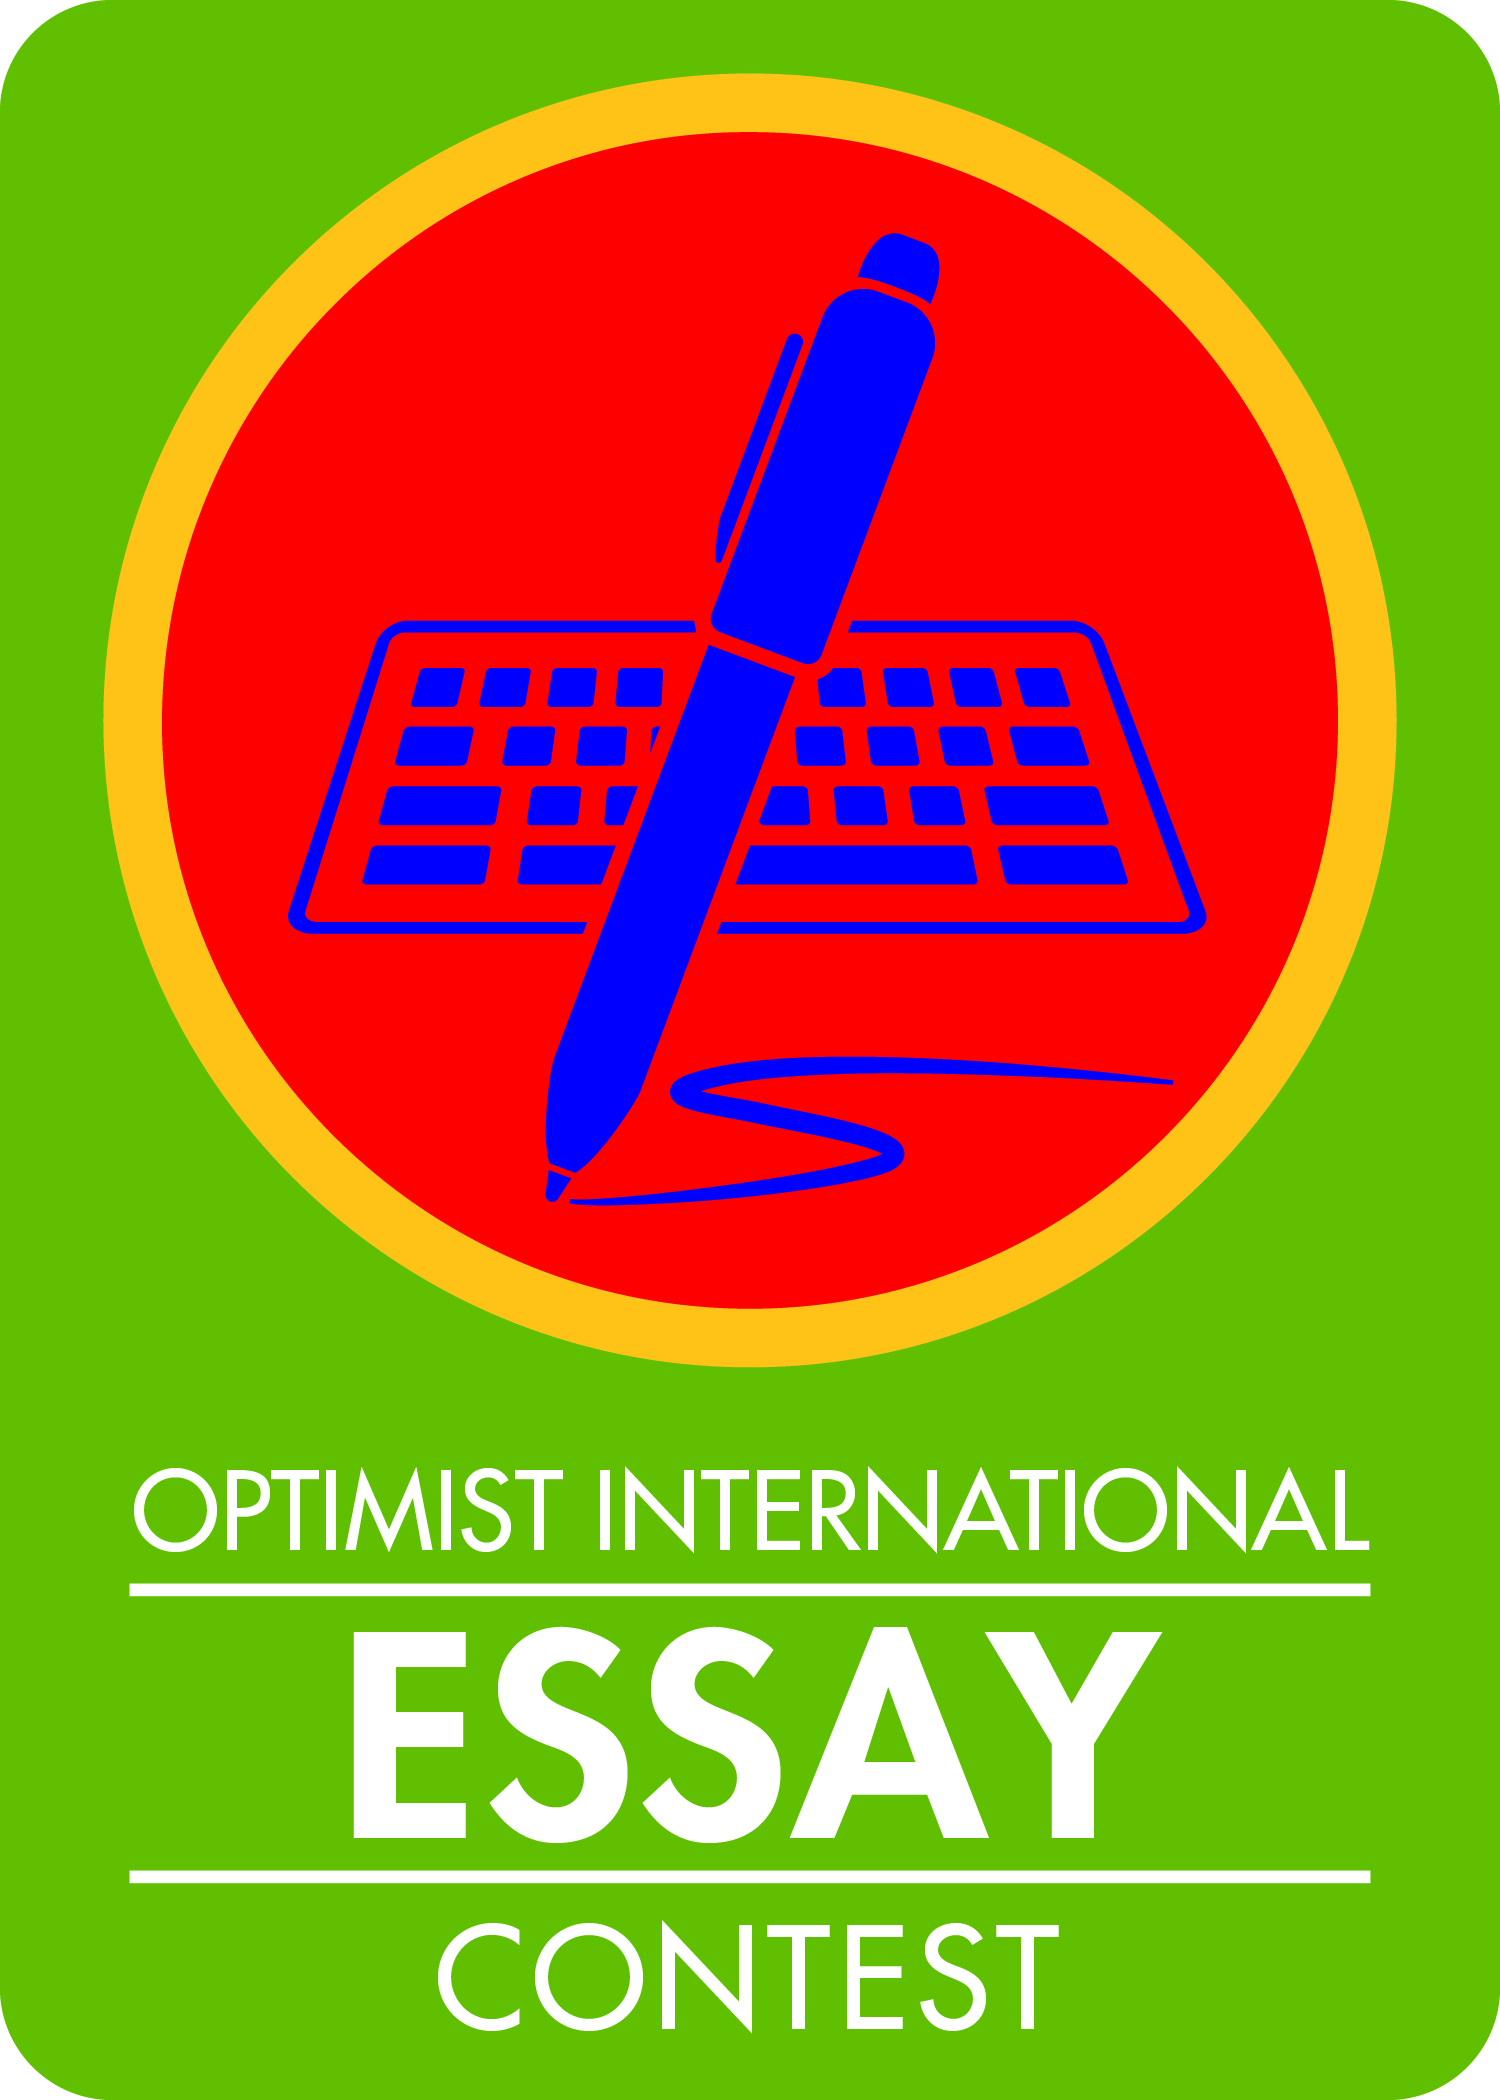 021 Essay High Res School Contests Fascinating Contest Winners 2019 For Scholarships Full